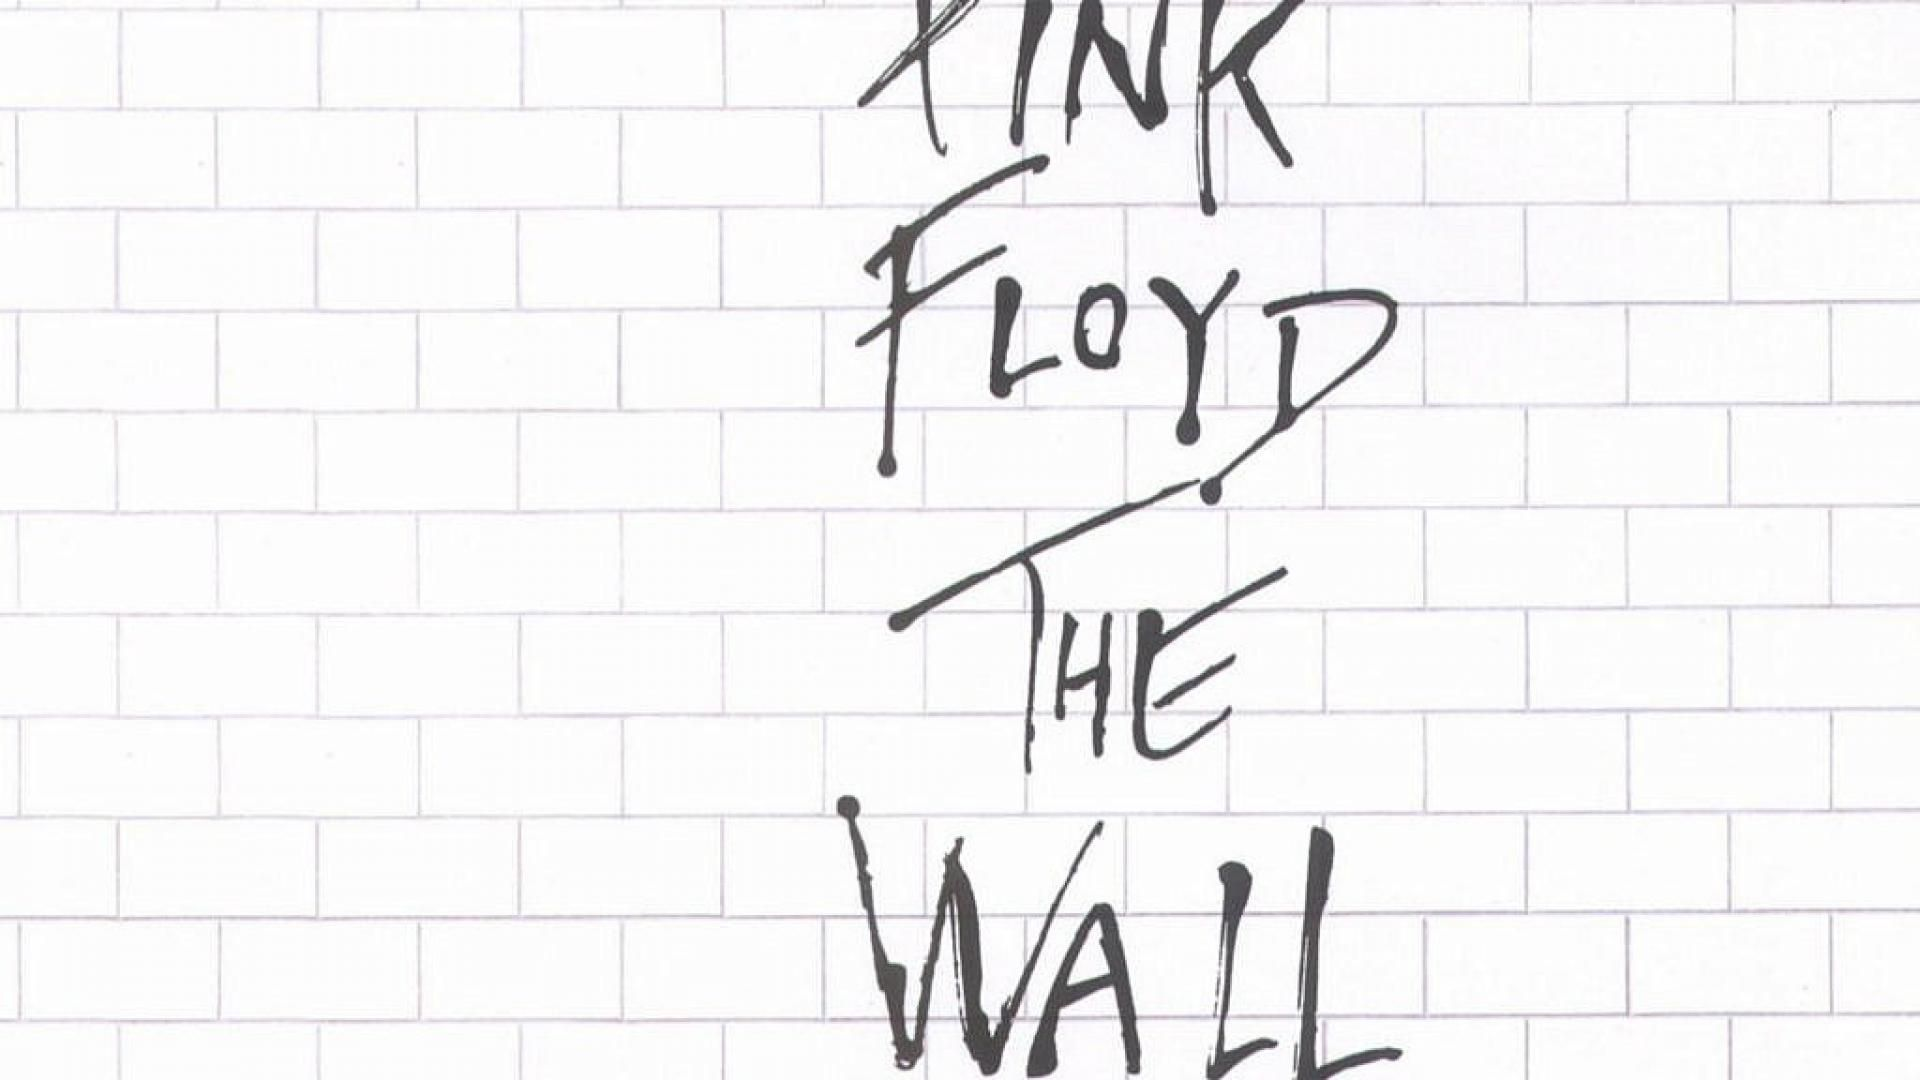 Pink Floyd The Wall Music Bands Hd Wallpaper 14963 Hq Pink Floyd Albums Pink Floyd Pink Floyd Comfortably Numb